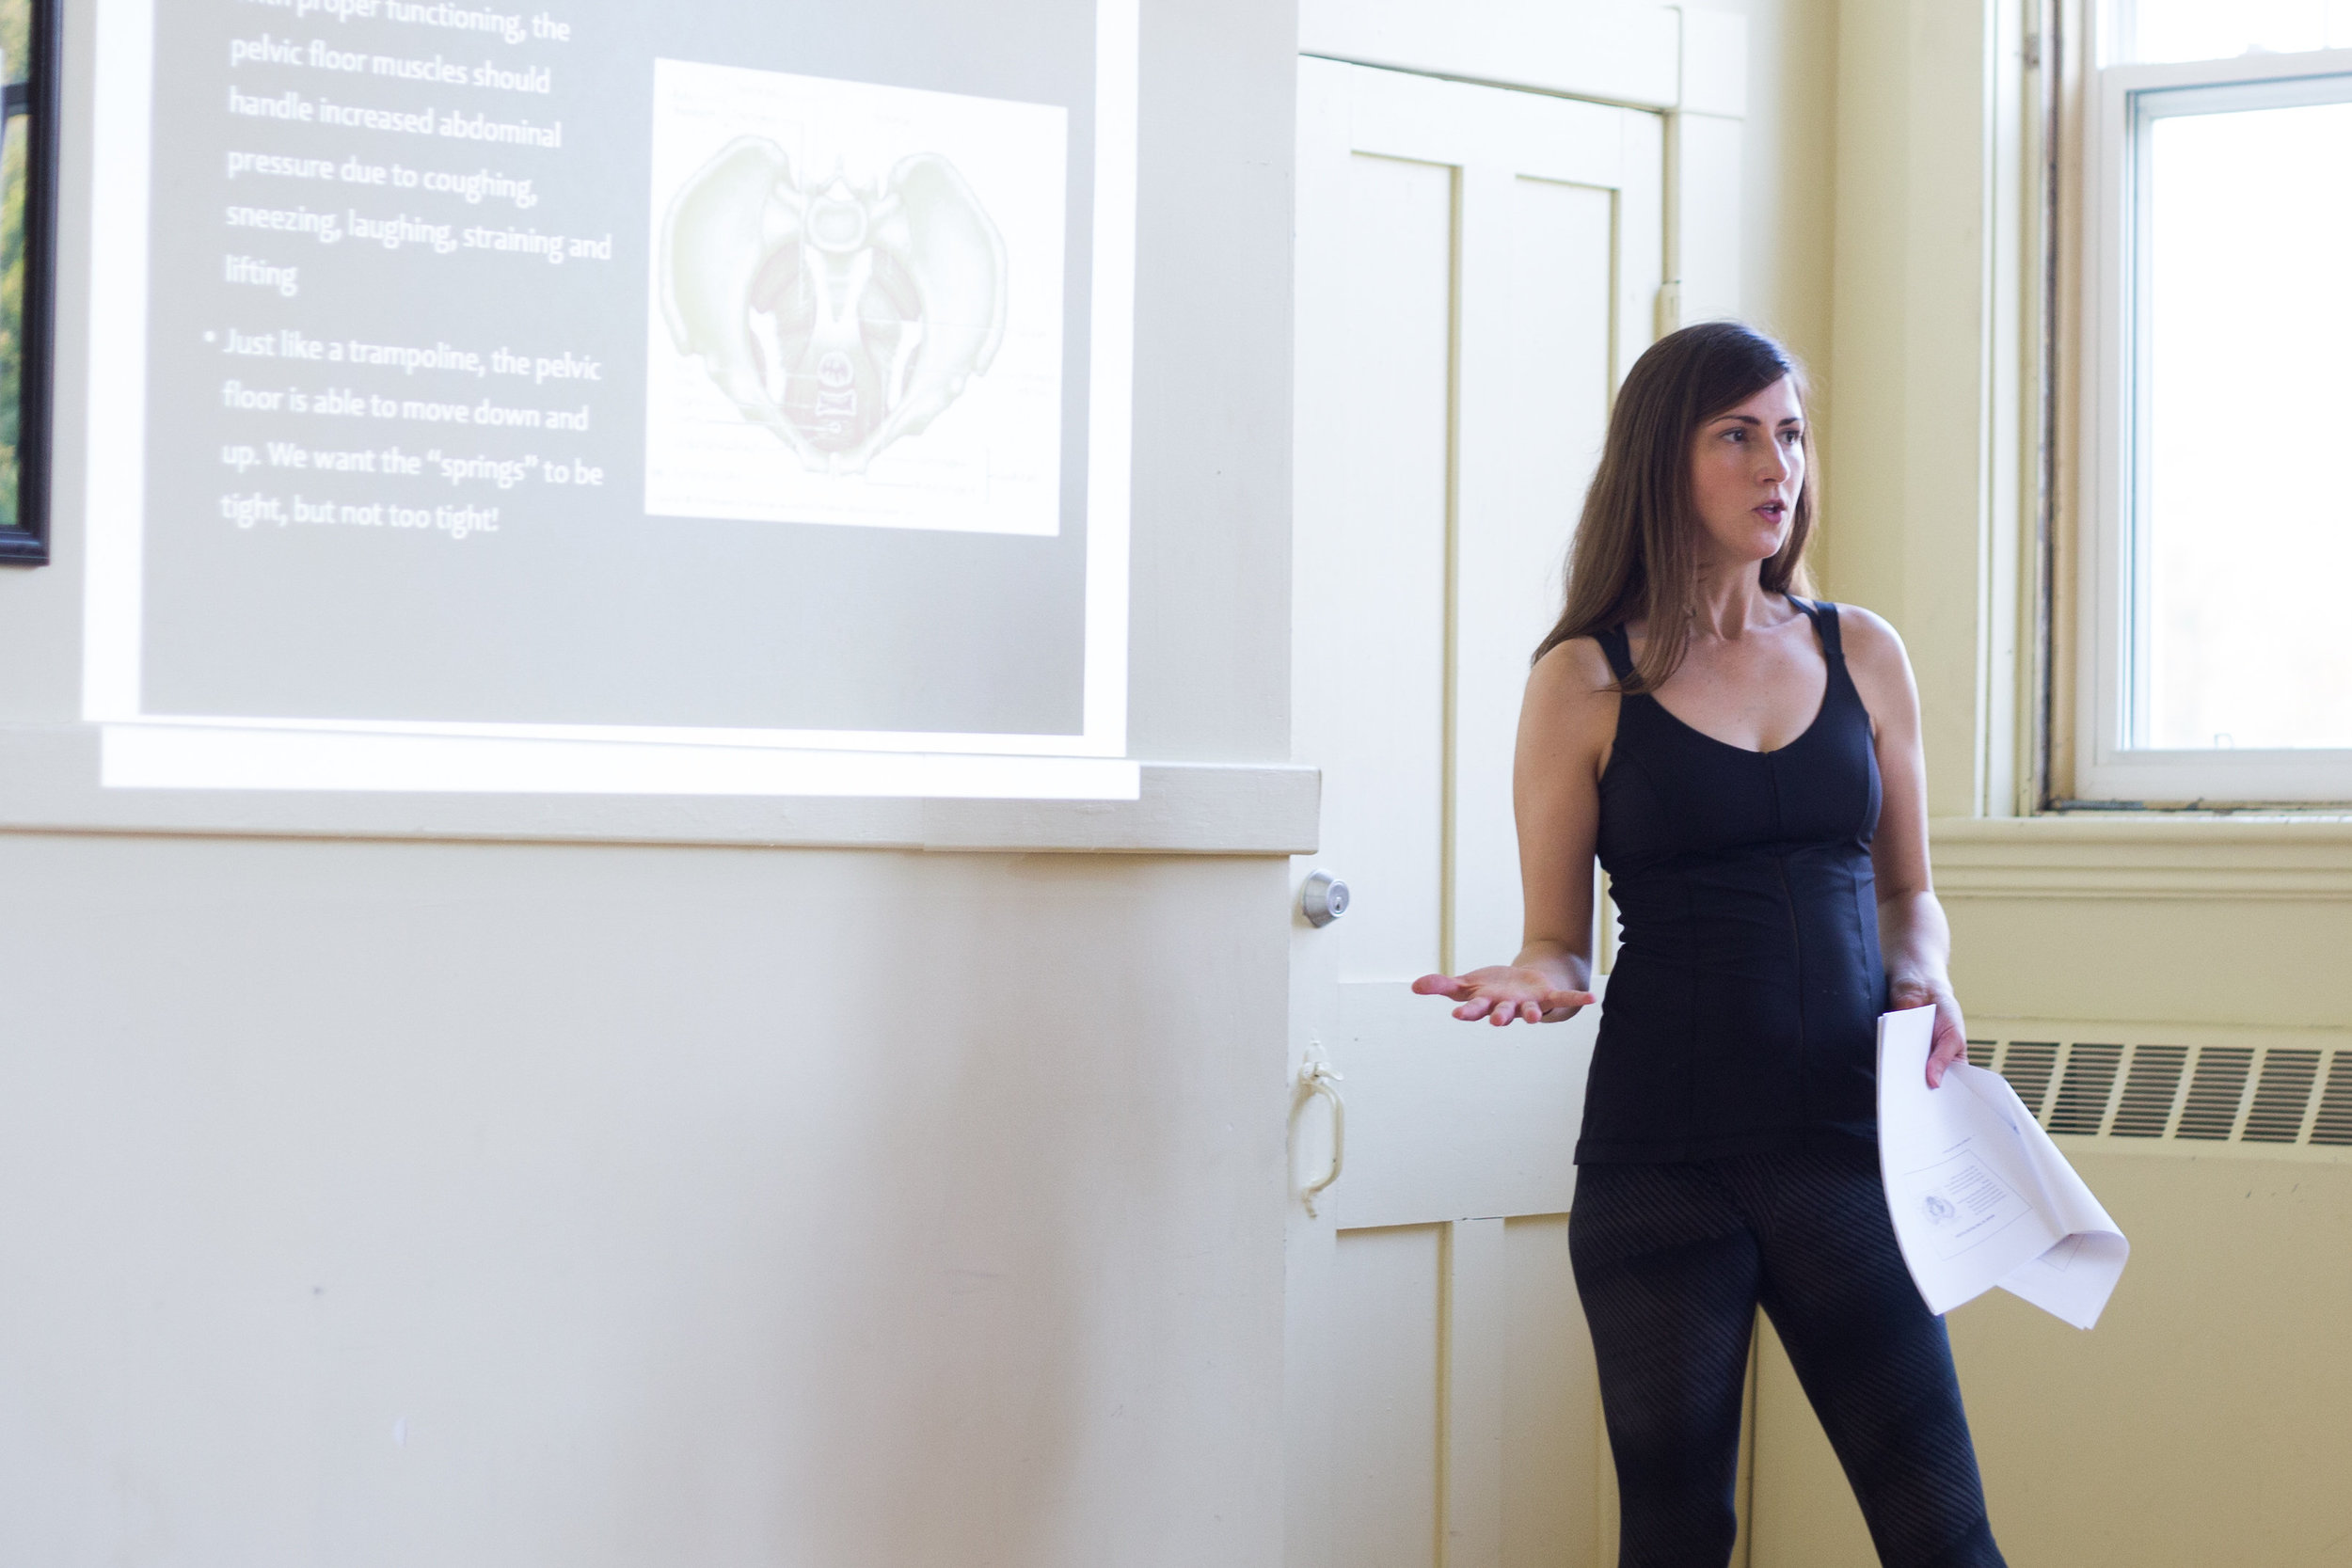 For more information about the Pelvic Floor Fitness Workshop: click here .